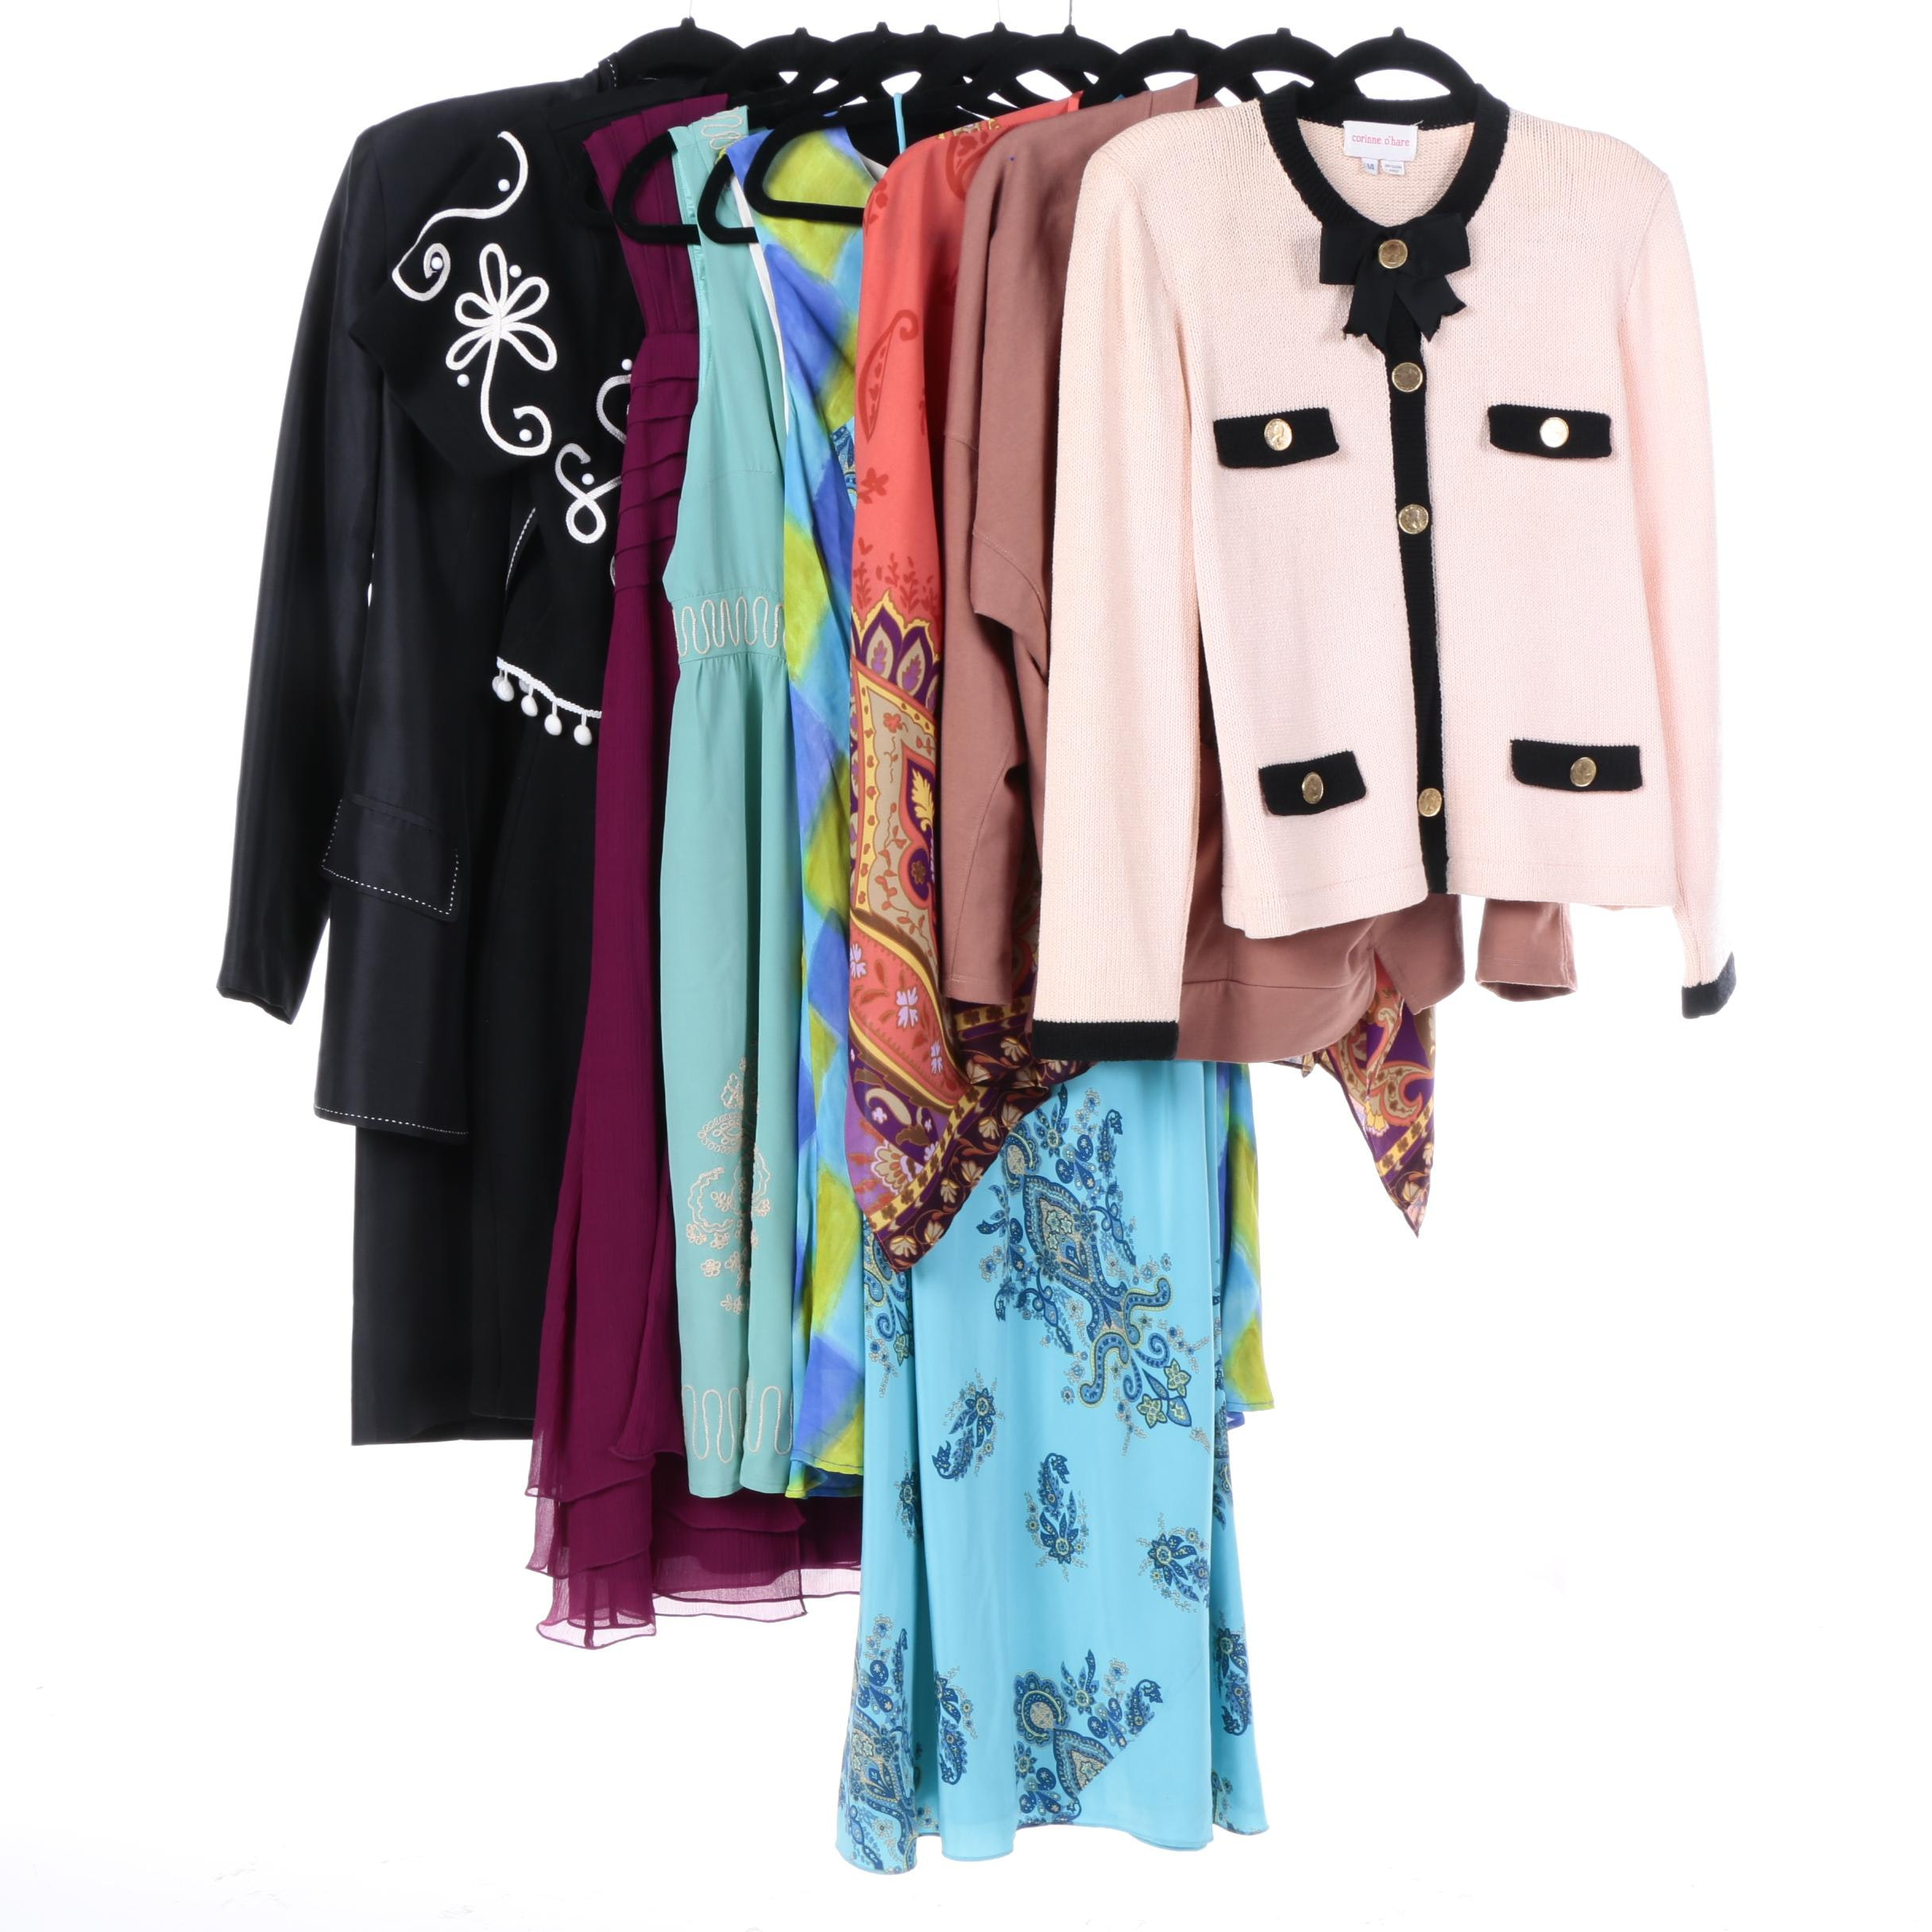 Women's Dresses and Jackets Including INC and Harris Wallace